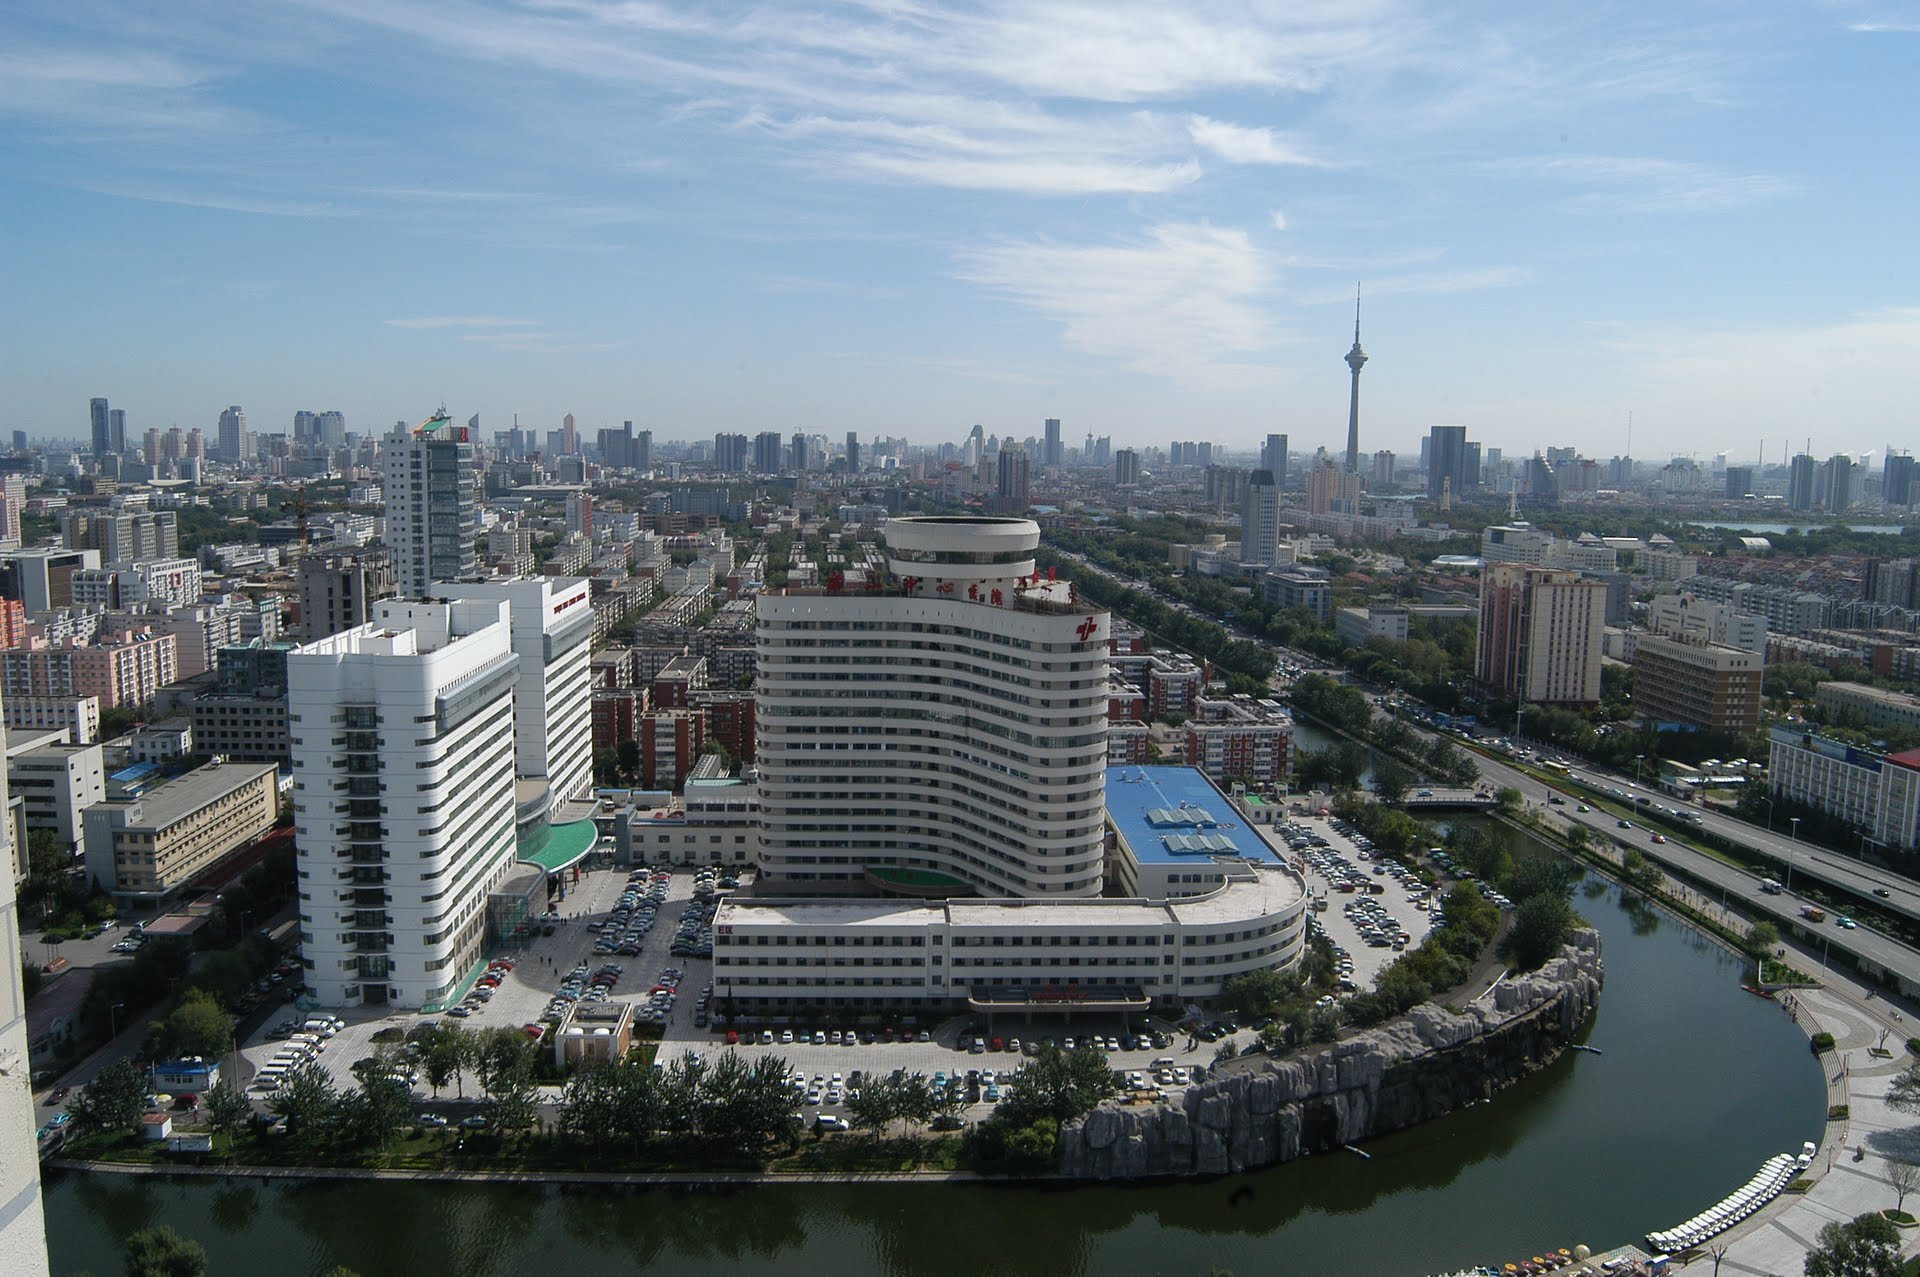 The Tianjin First Central Hospital.